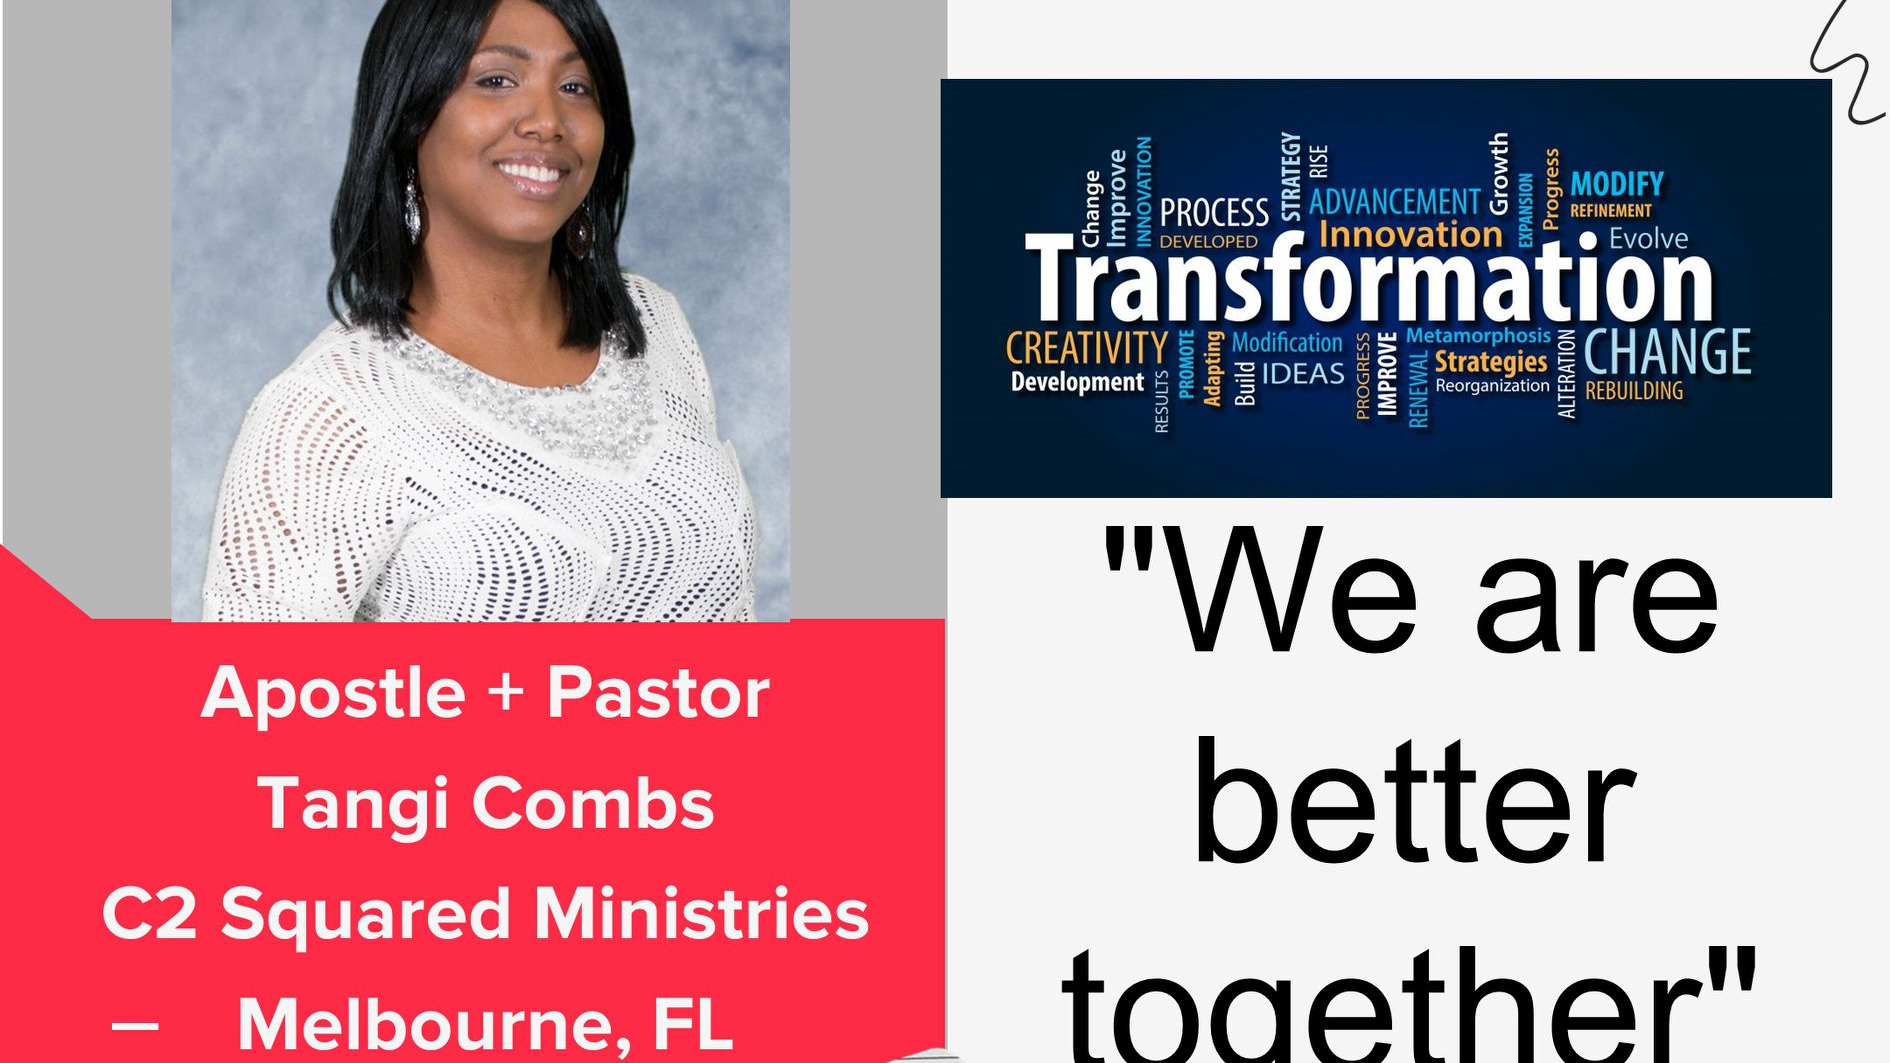 Thumbnail forFaith and Community Fireside Chat Apostle Pastor Tangi Combs on ViewStub